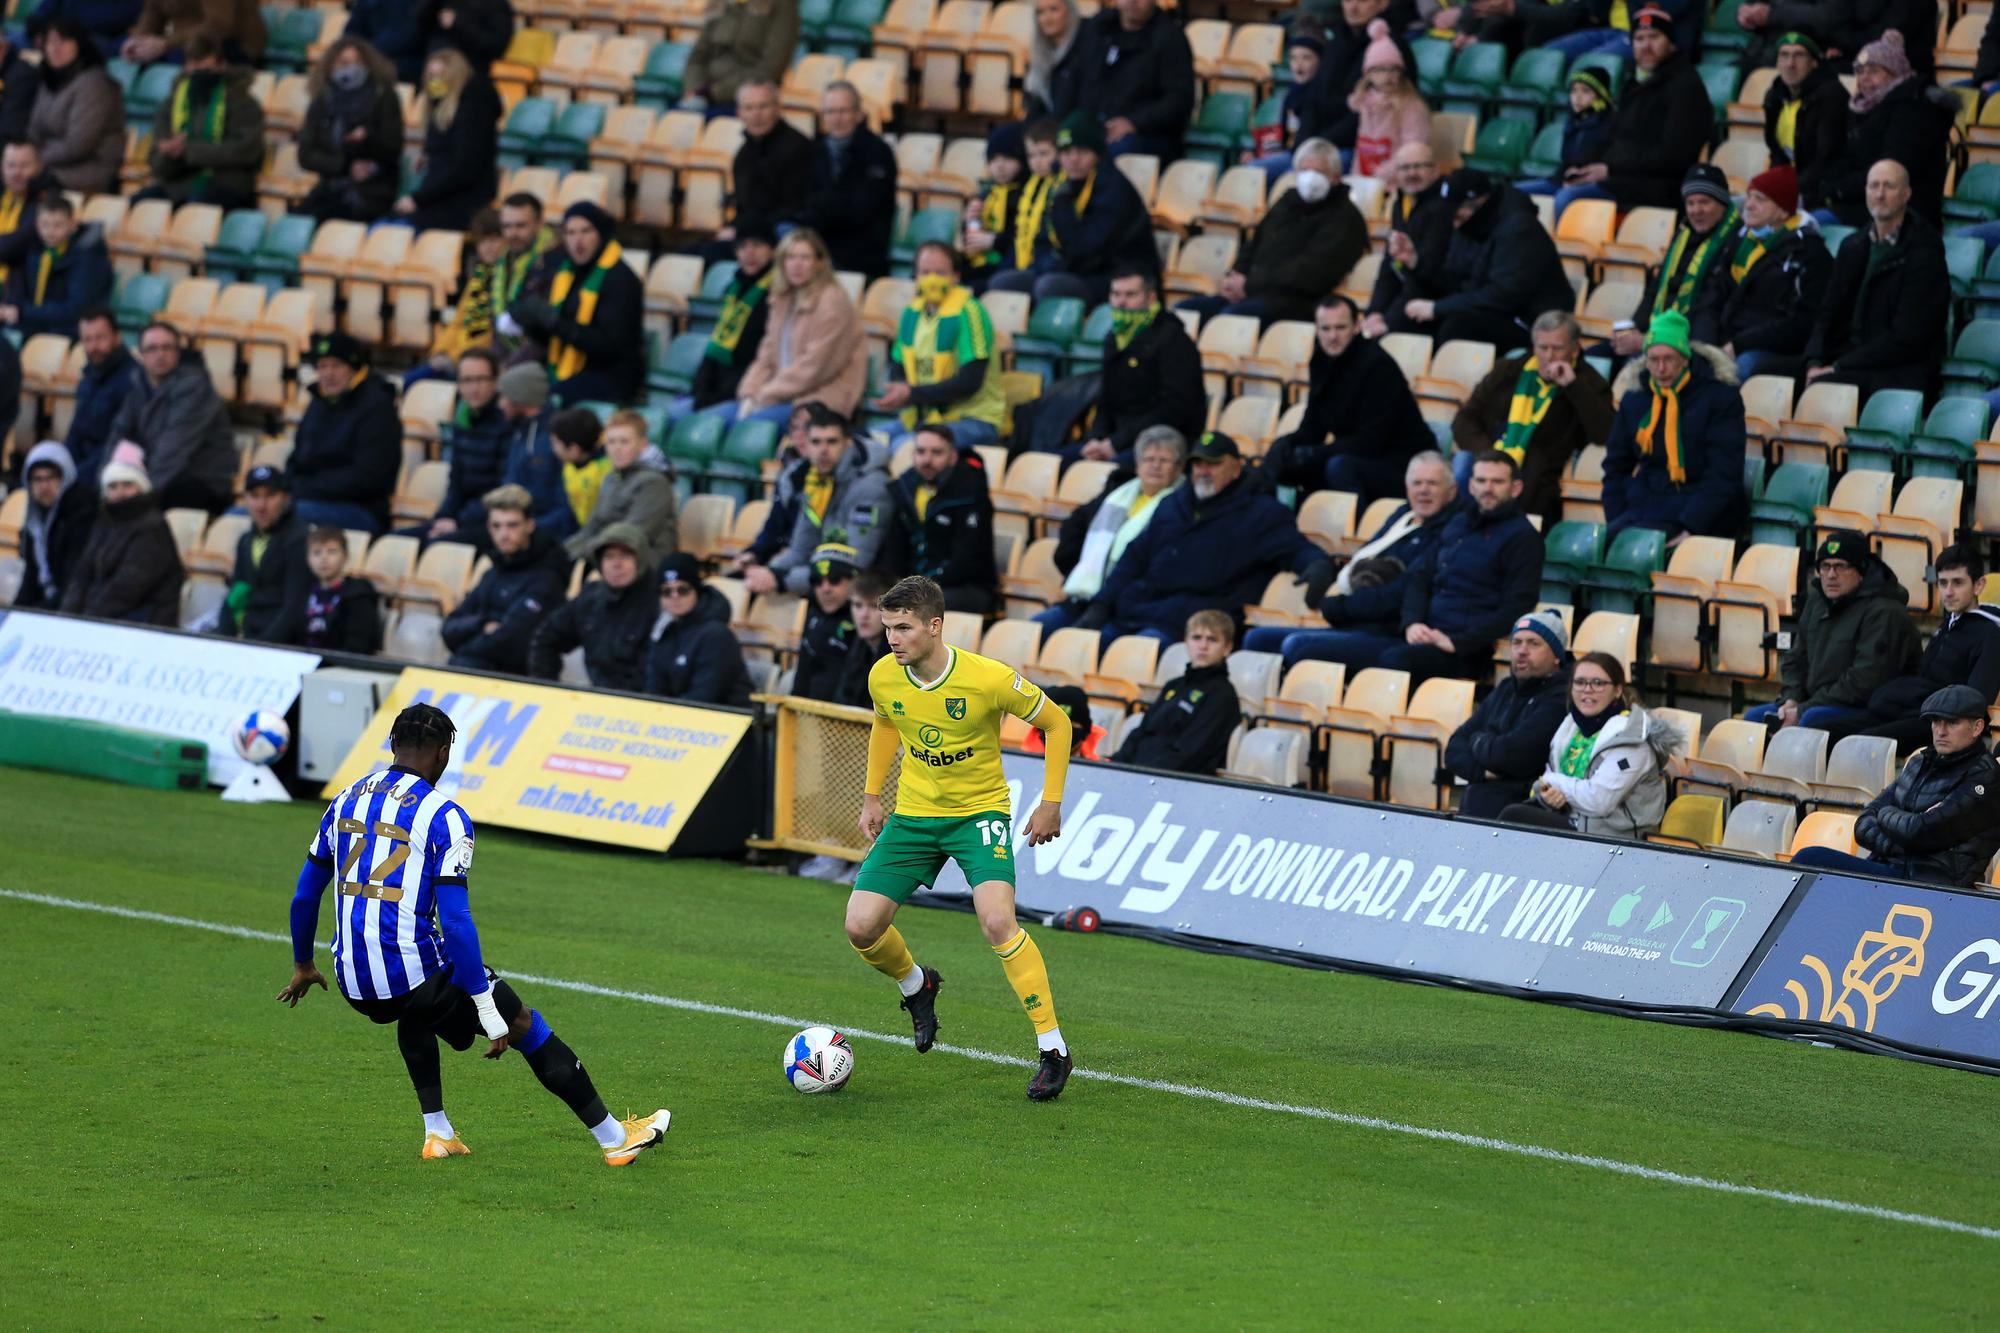 norwich city vs sheffield wednesday - photo #13